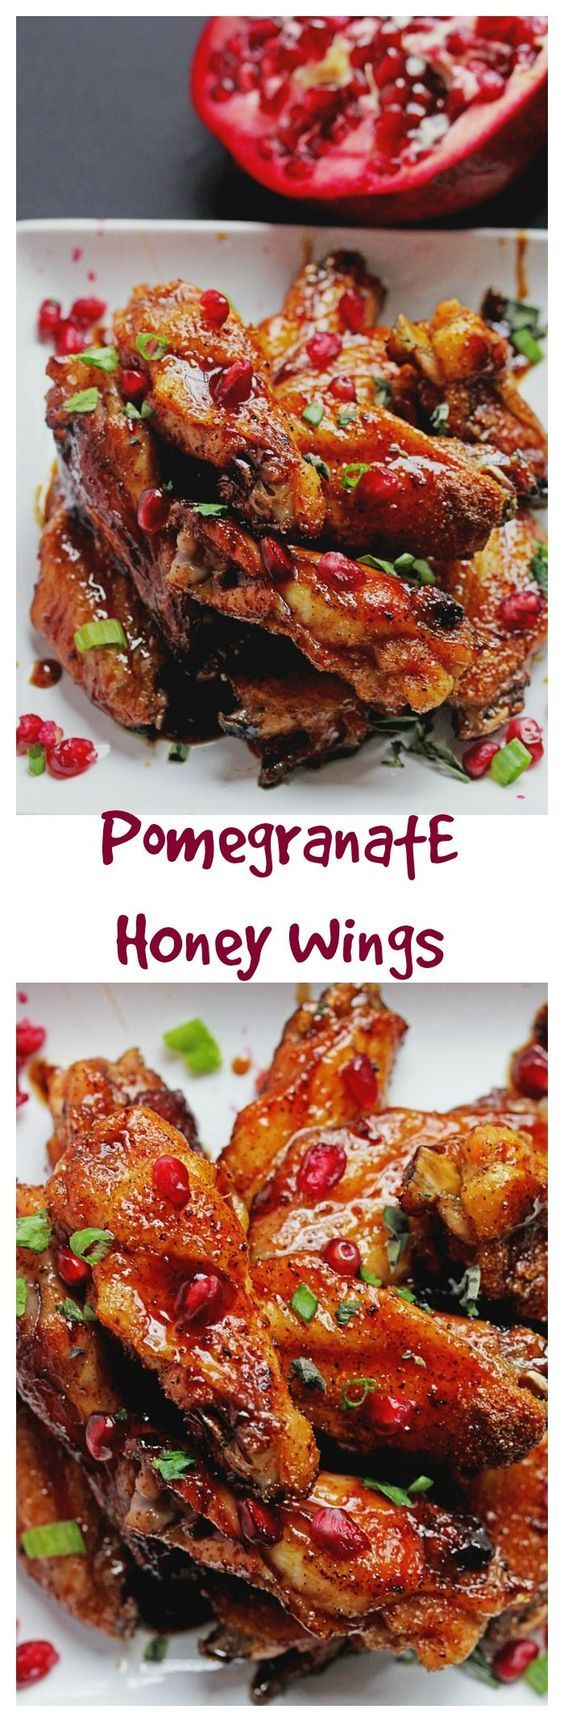 Pomegranate Honey Wings | Grandbaby Cakes